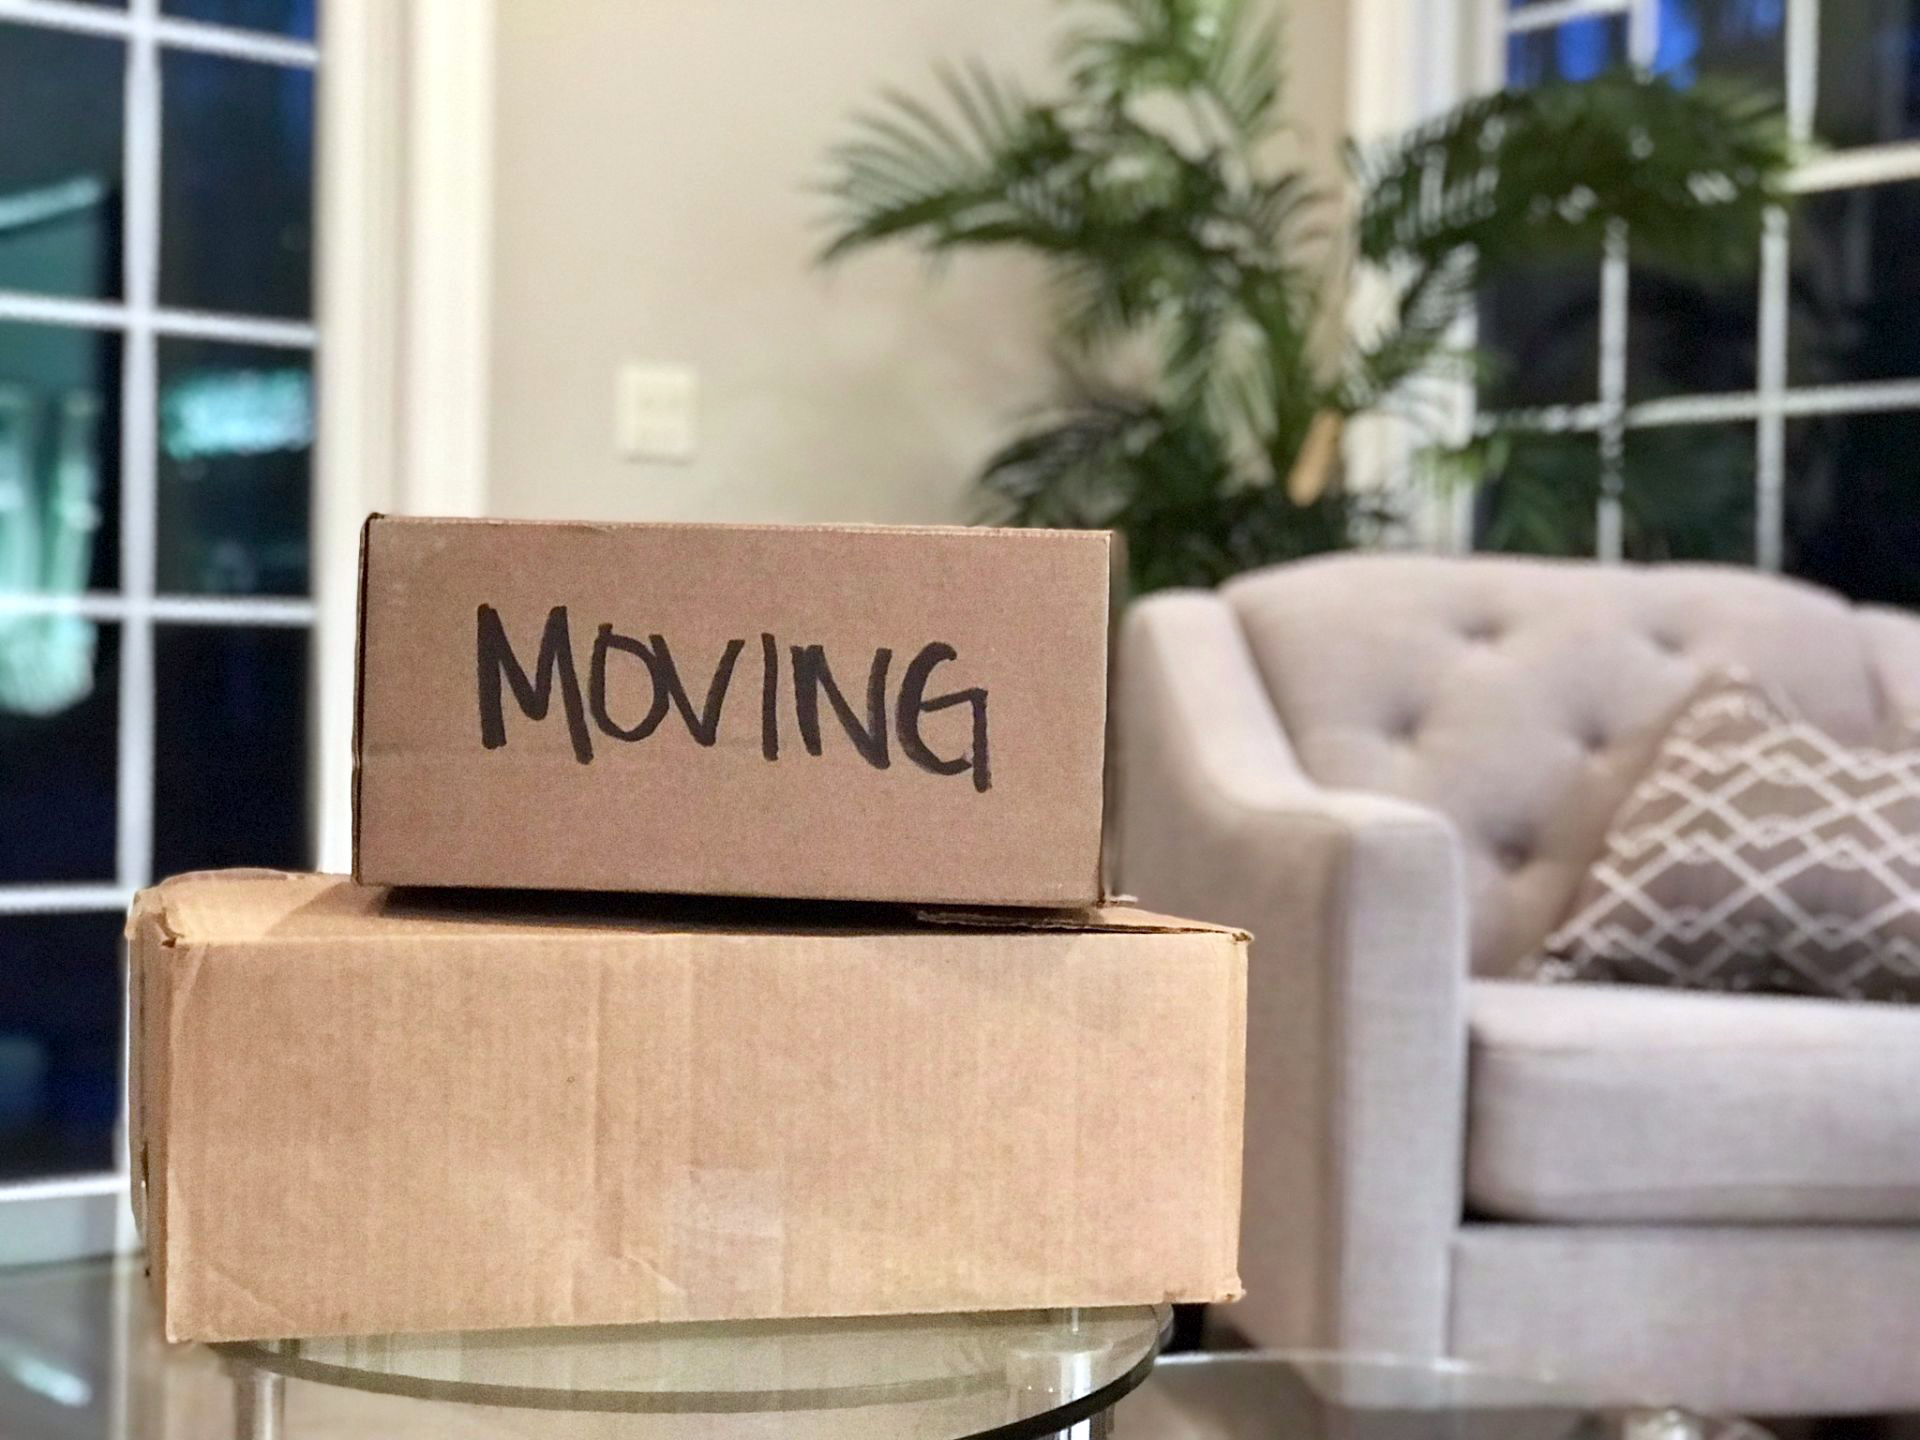 Who to notify when moving